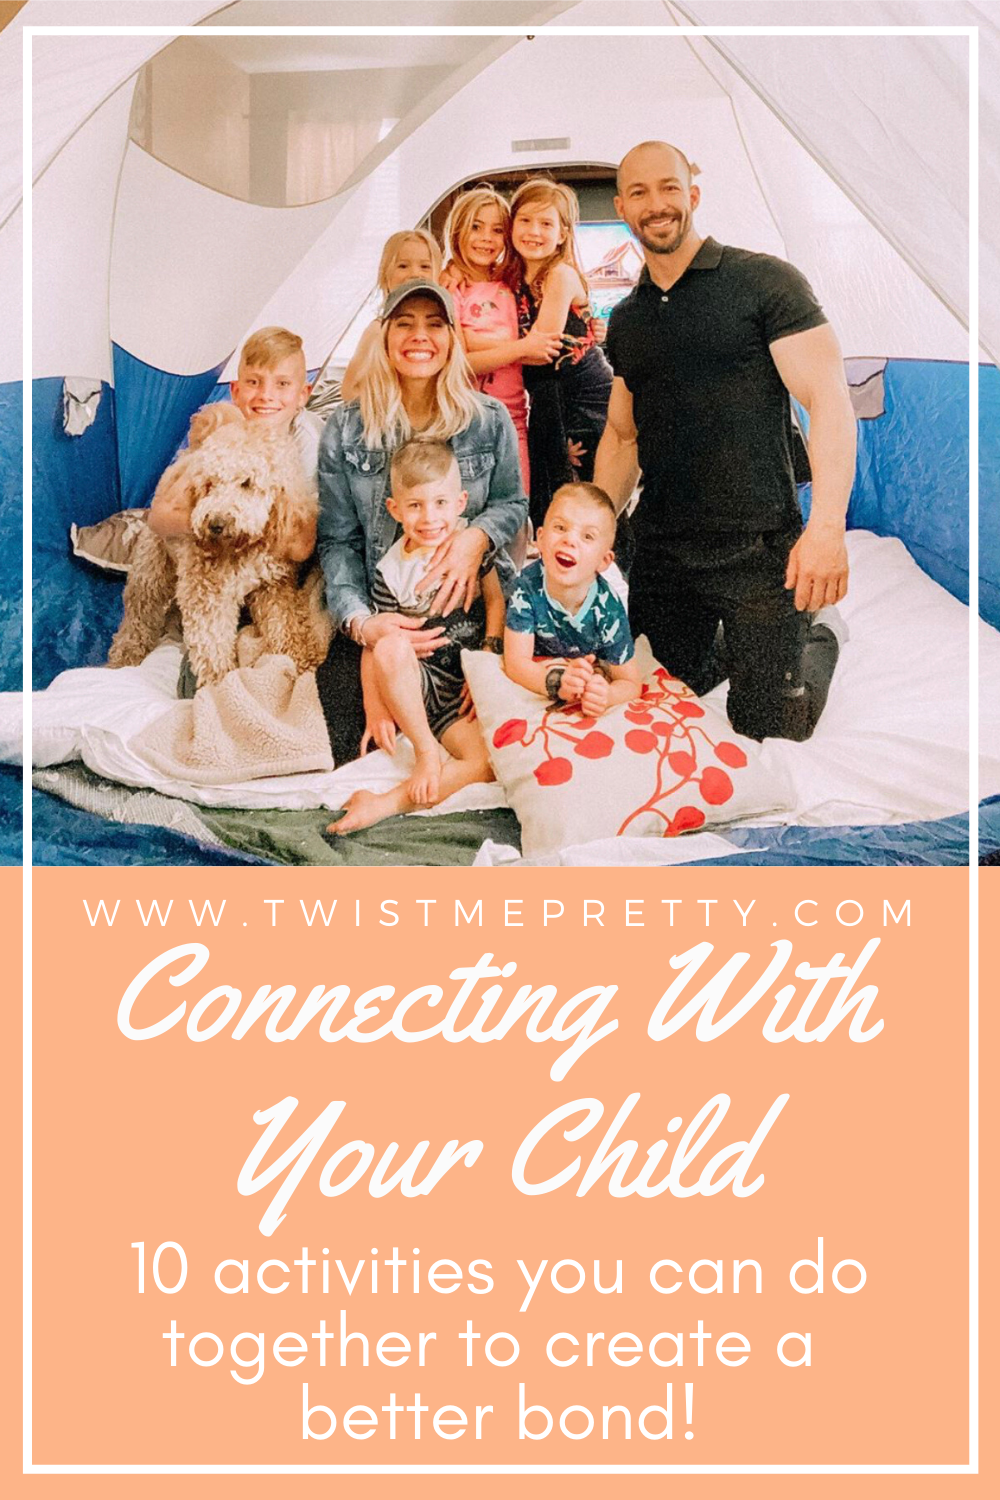 Connecting with your child. 10 activities you can do together to create a better bond! www.twistmepretty.com